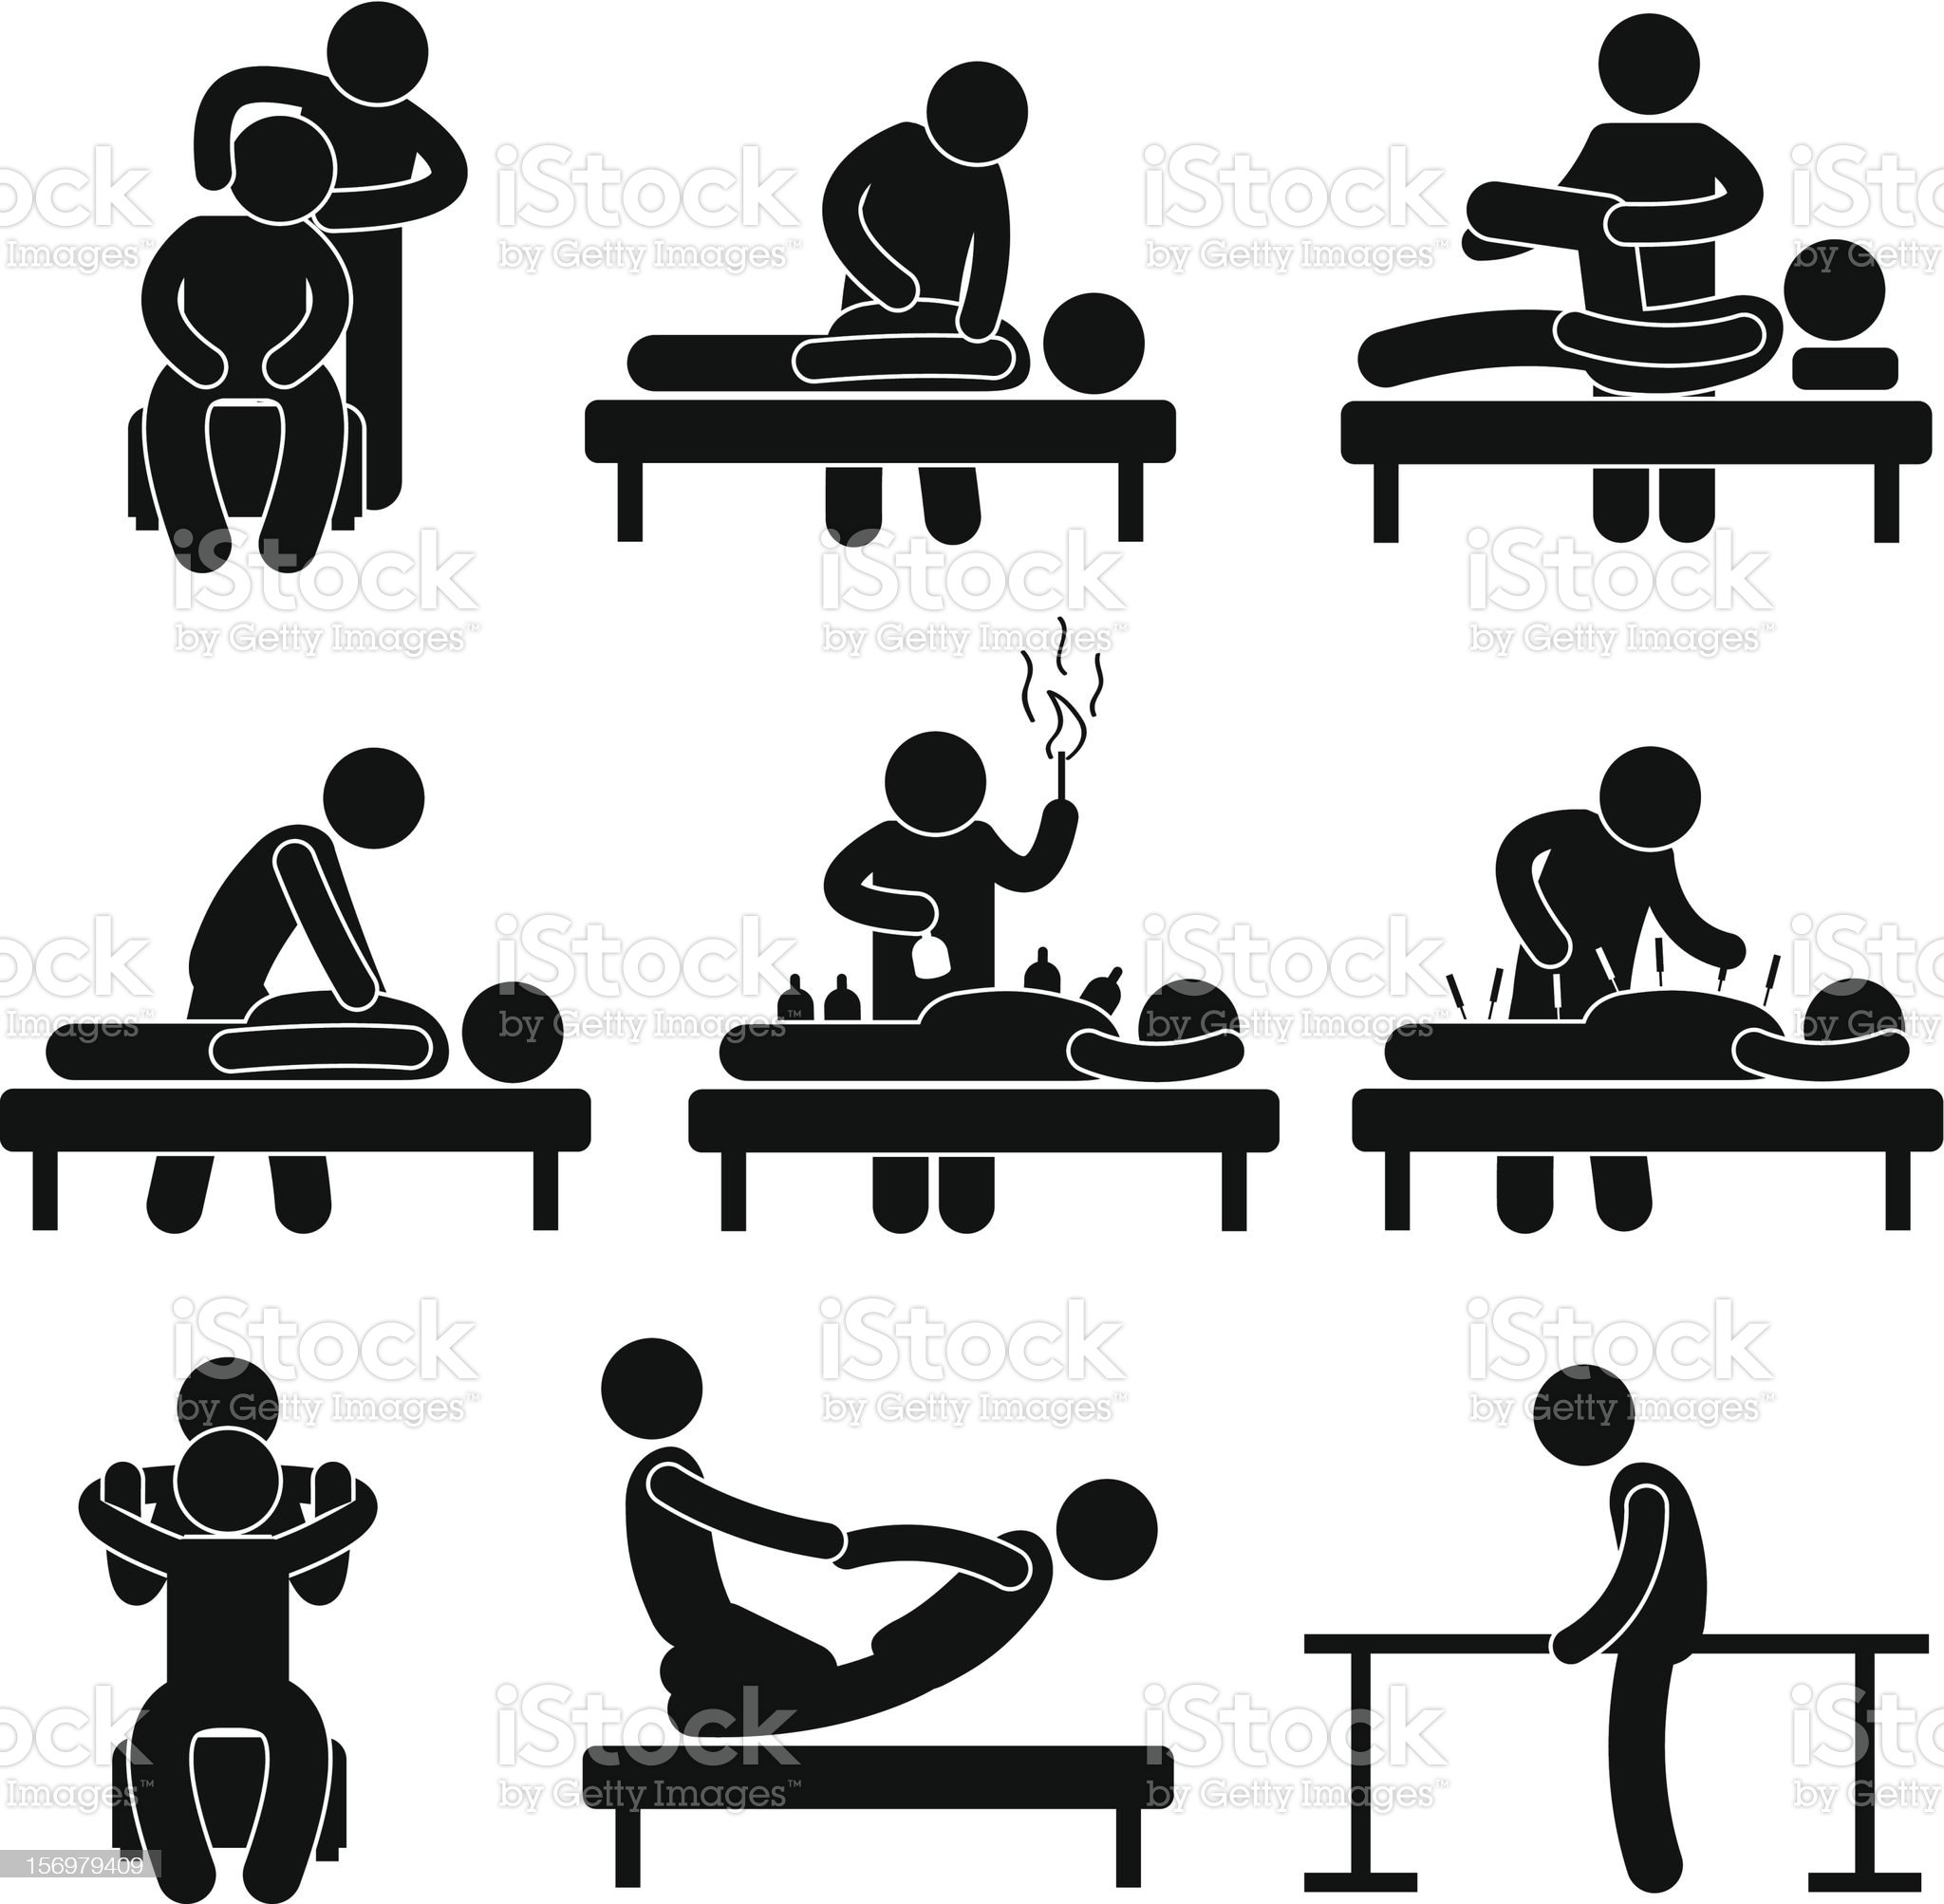 Chiropractic Acupuncture Massage Pictogram royalty-free stock vector art